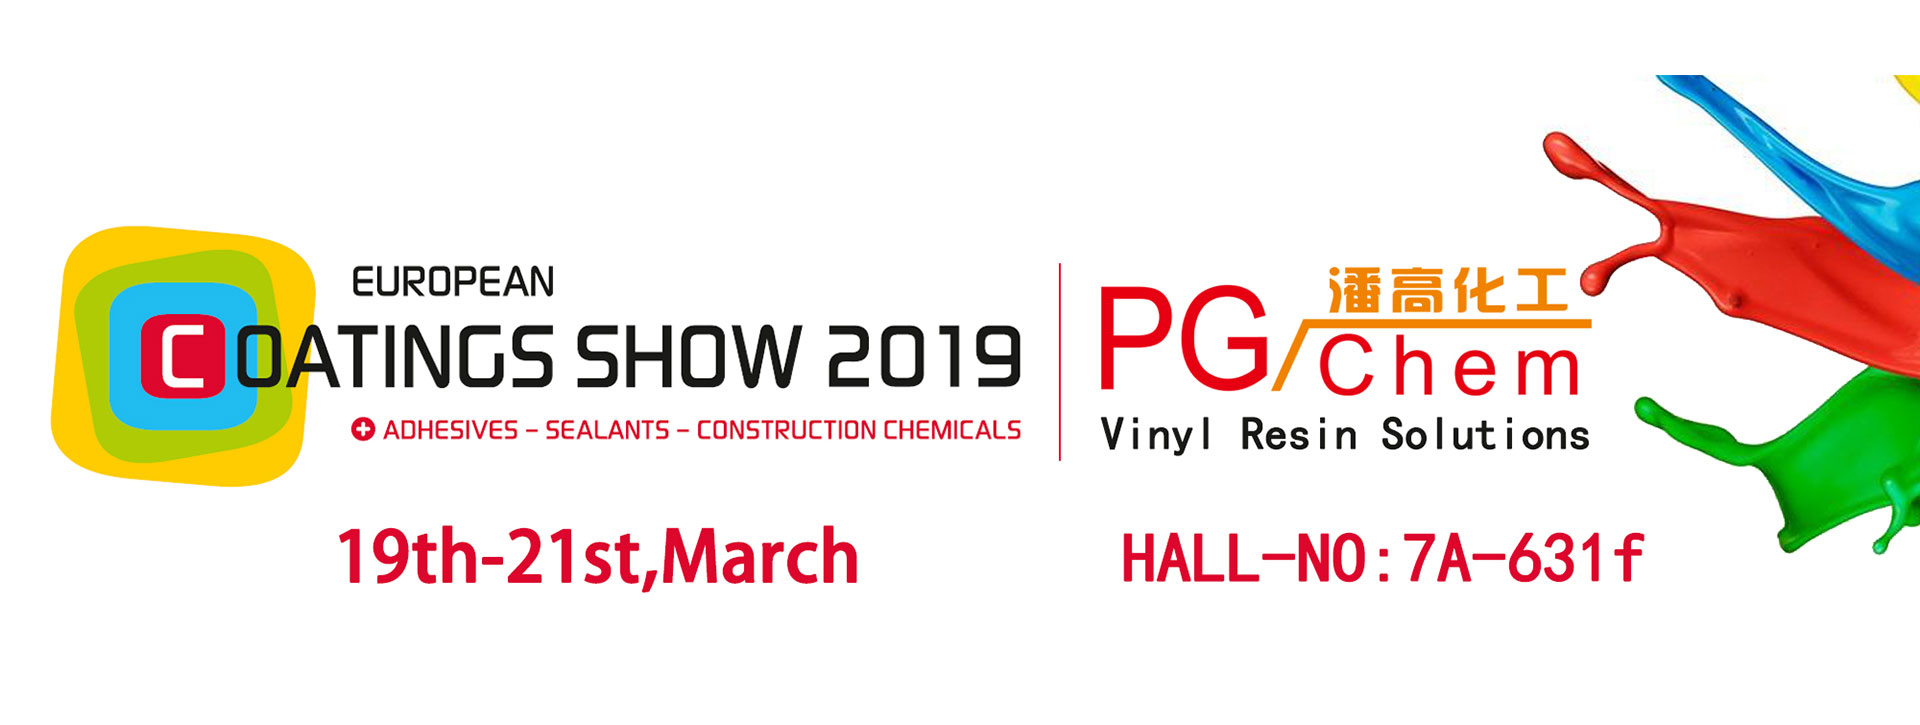 2019 European Coatings Show